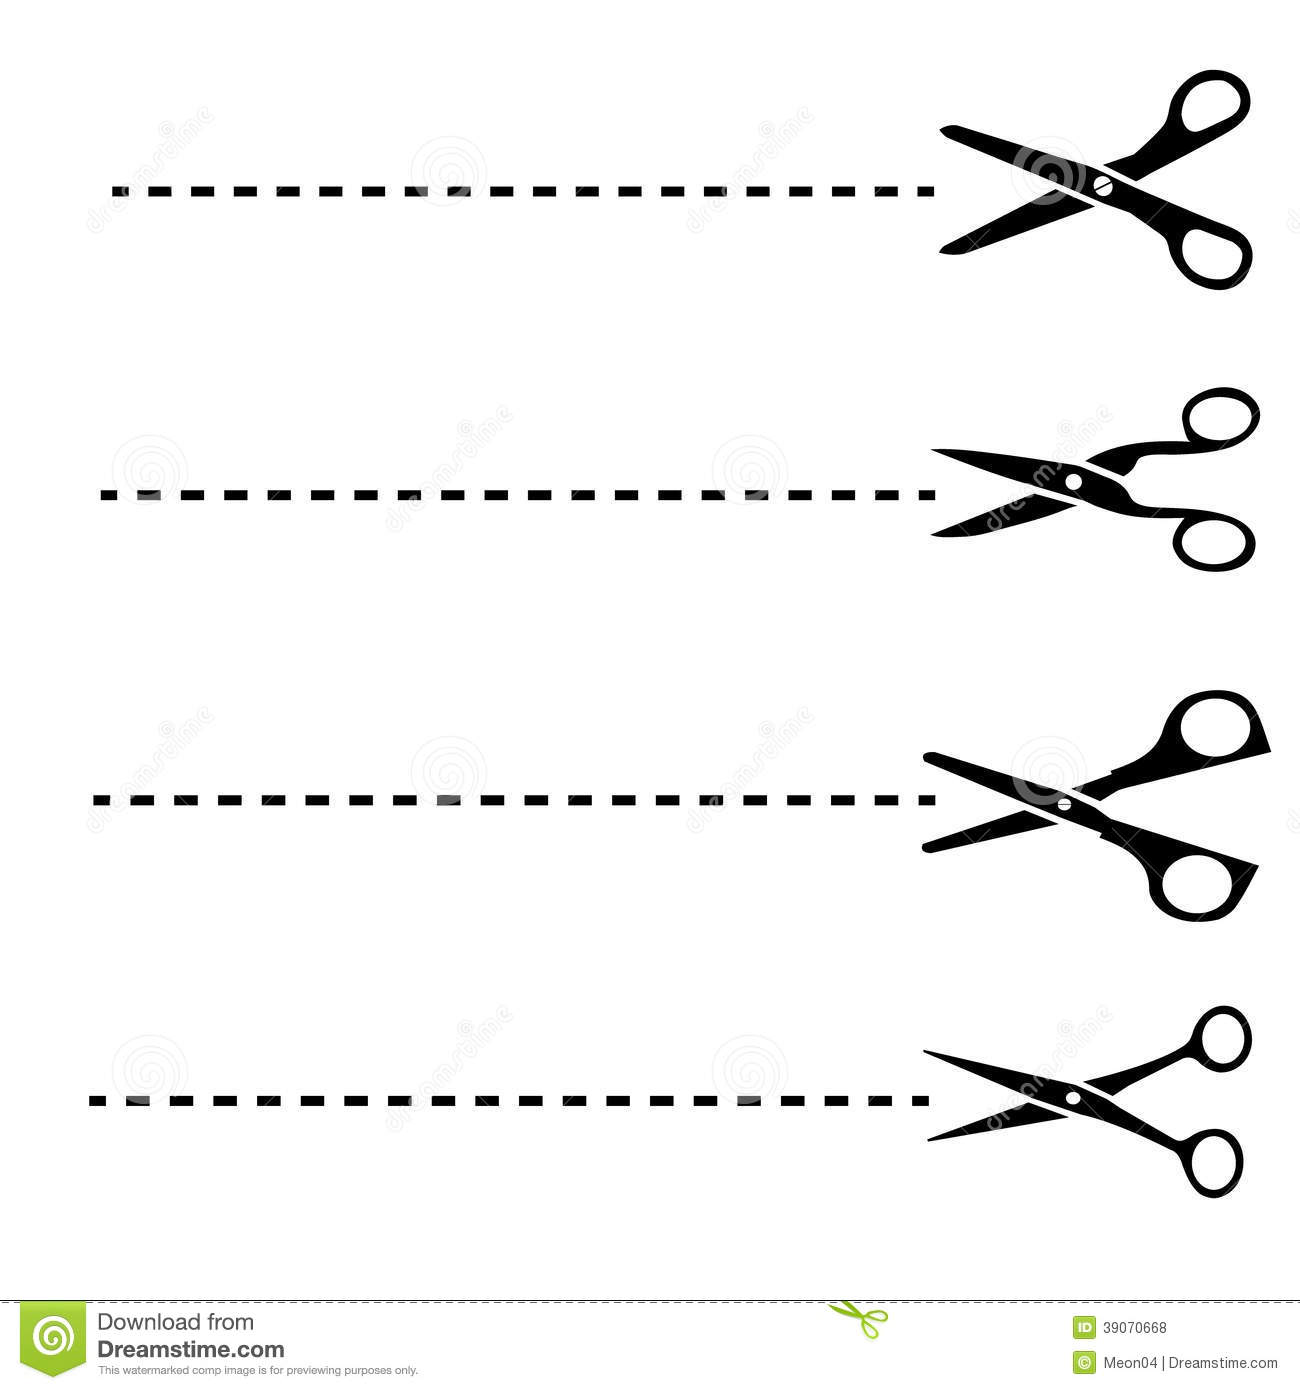 Vector Drawing Lines Kindergarten : Scissors with cut lines stock vector illustration of